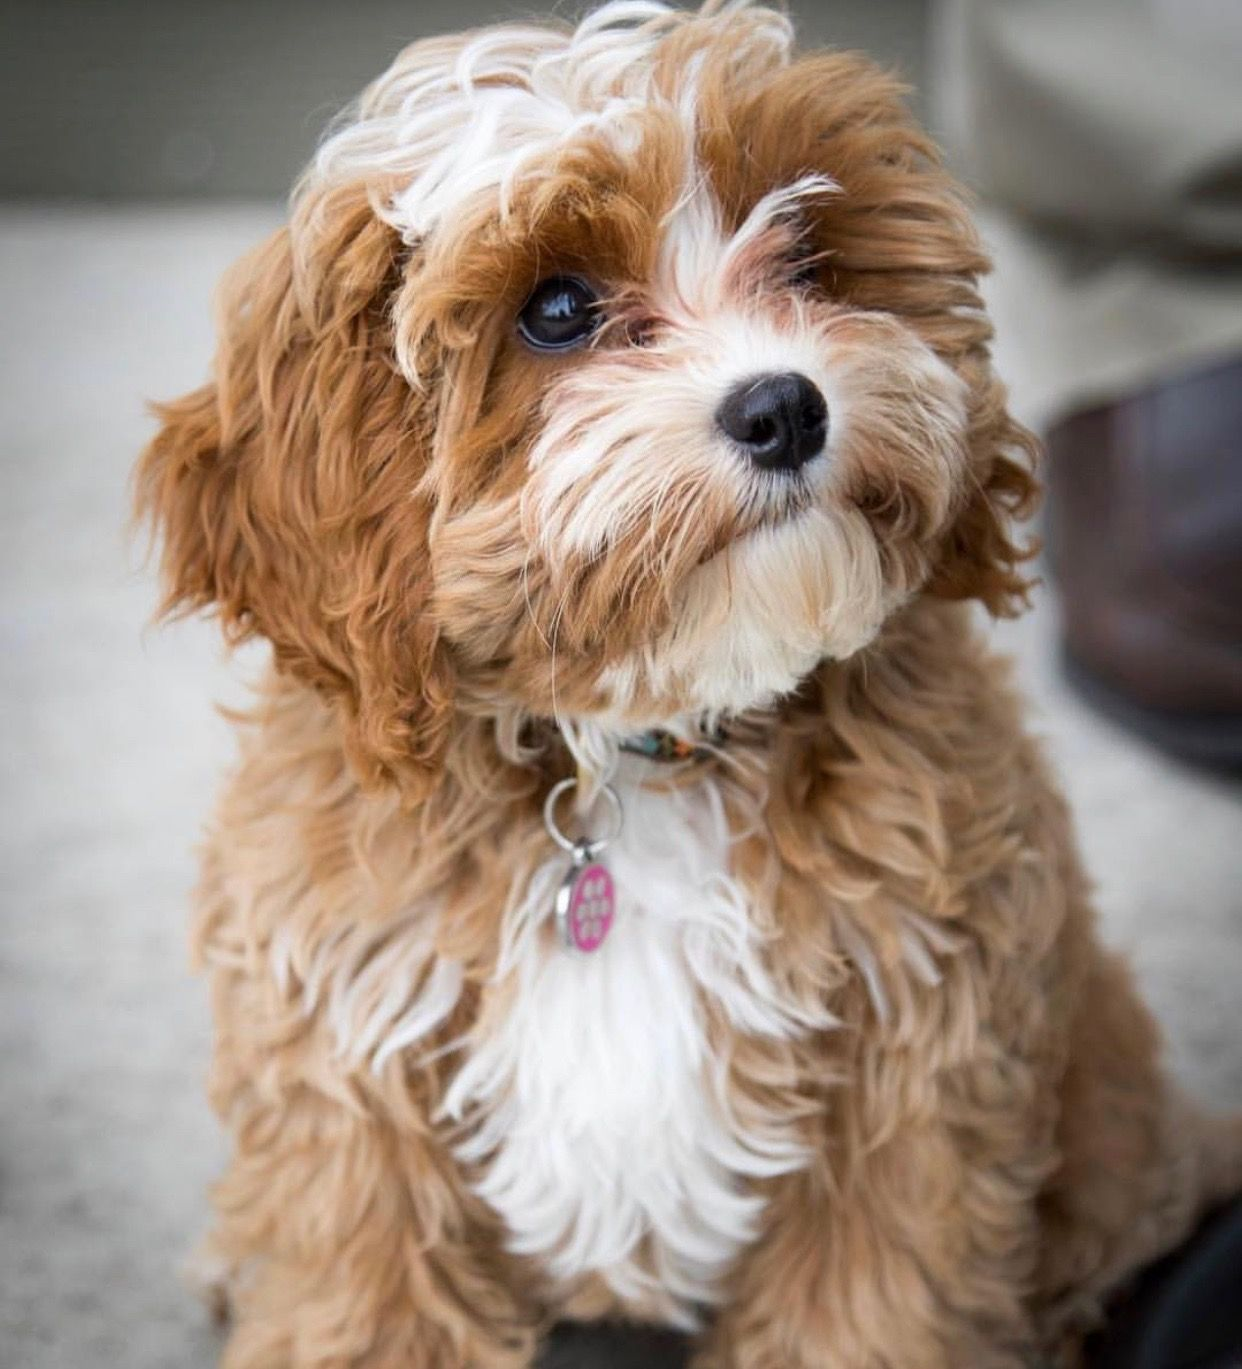 Cavapoo Puppies A Complete Guide For This Breed Cavapoo Cavapoo Puppies Best Dog Food